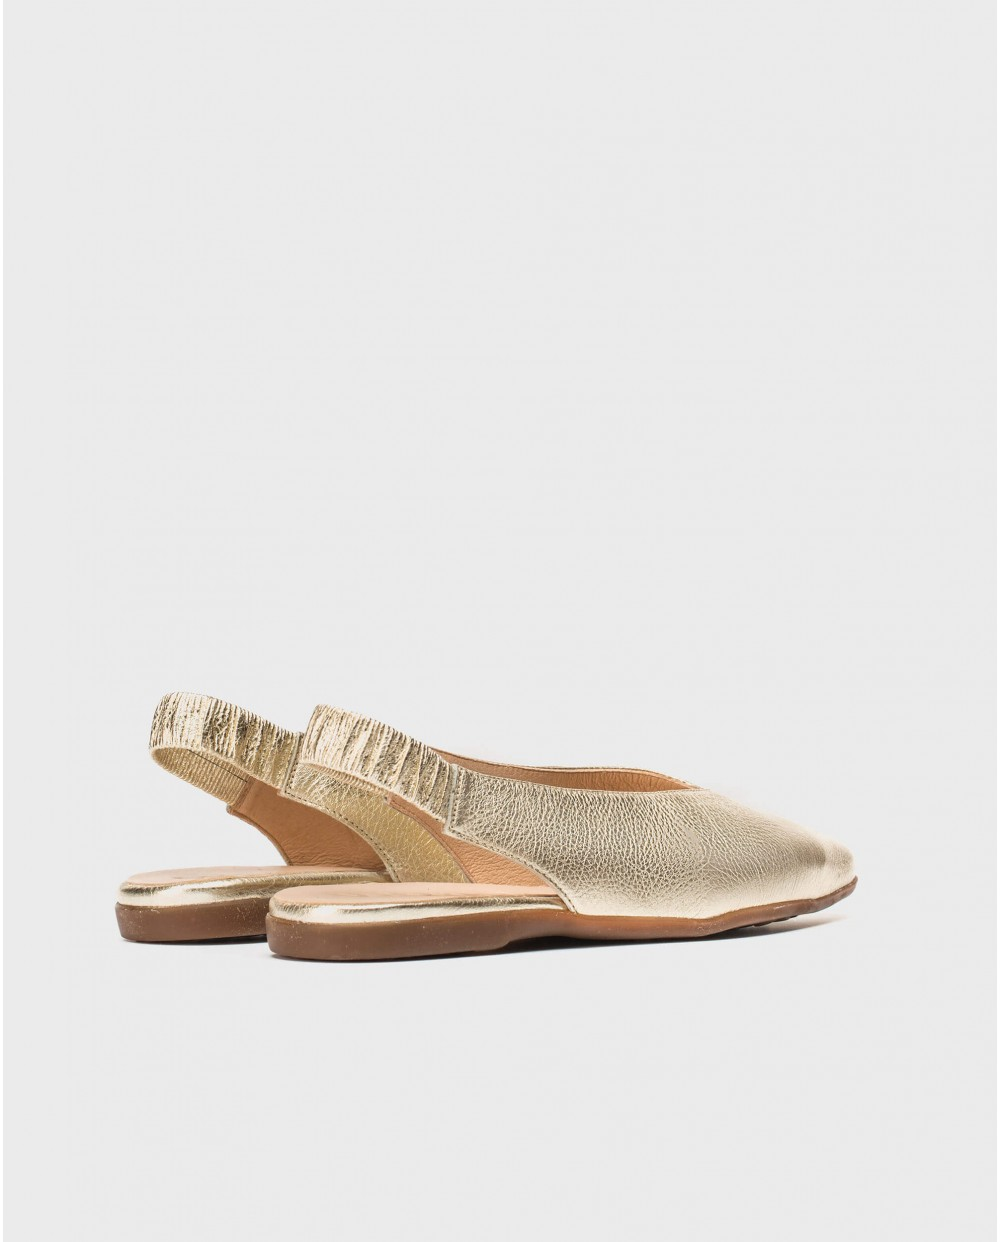 Wonders-Flat Shoes-Metallic leather slingback sandal